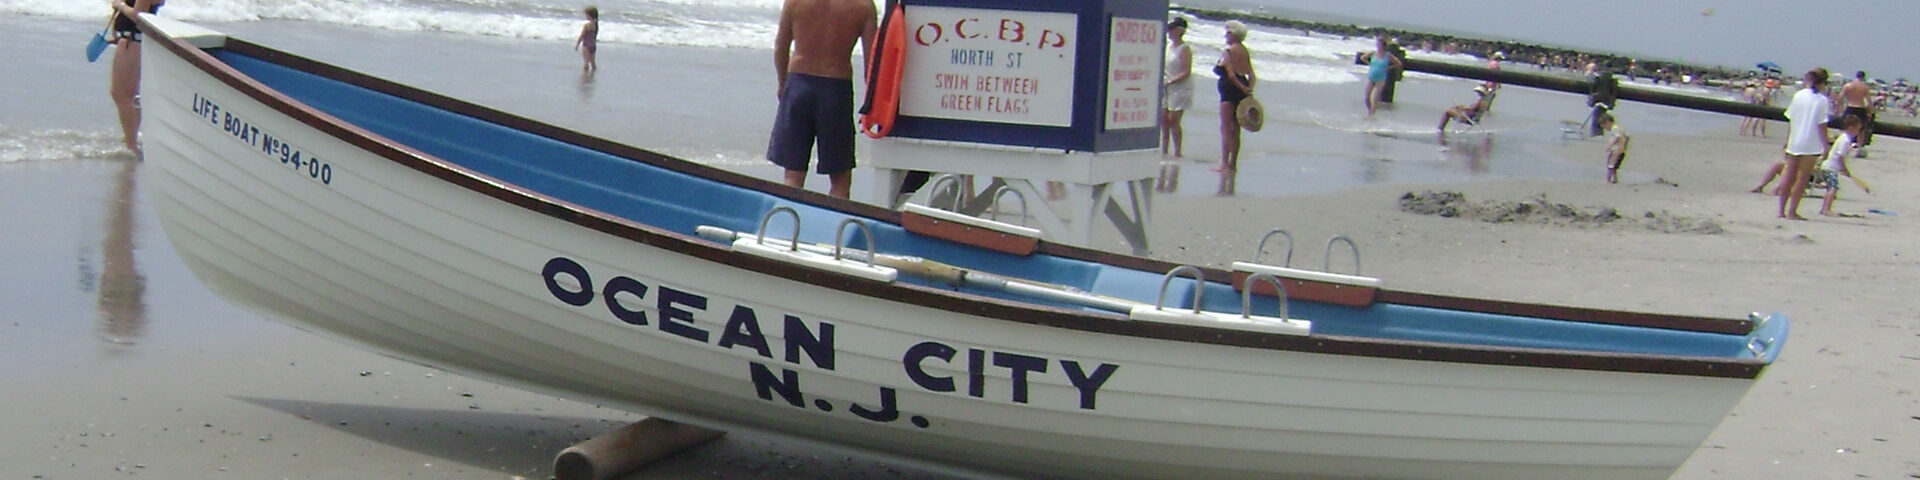 OCNJHA: Ocean City, NJ Hospitality Association